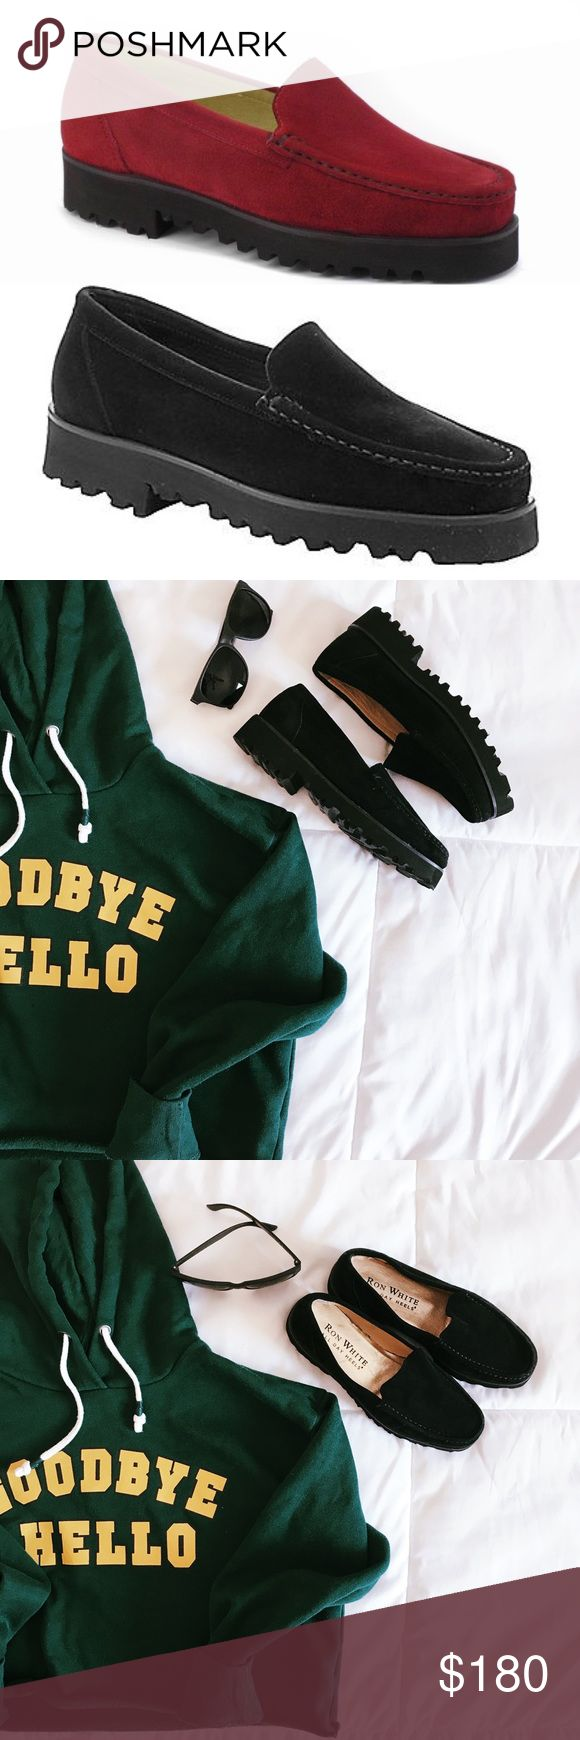 "Ron White suede chunky sole loafer 🖤The Ron White ""all day heels"" suede loafer is lightweight & crafted from cashmere suede! Chunky 1 1/2' inch sole. These shoes will make any outfit turn chic! Only worn a few times with very mild insole wear, tiny spot of suede wear on left back shoe~seen in photo, bottom soles look awesome! Retail price $345. Offers welcome✌🏼no trades thank you Ron White Shoes Flats & Loafers"